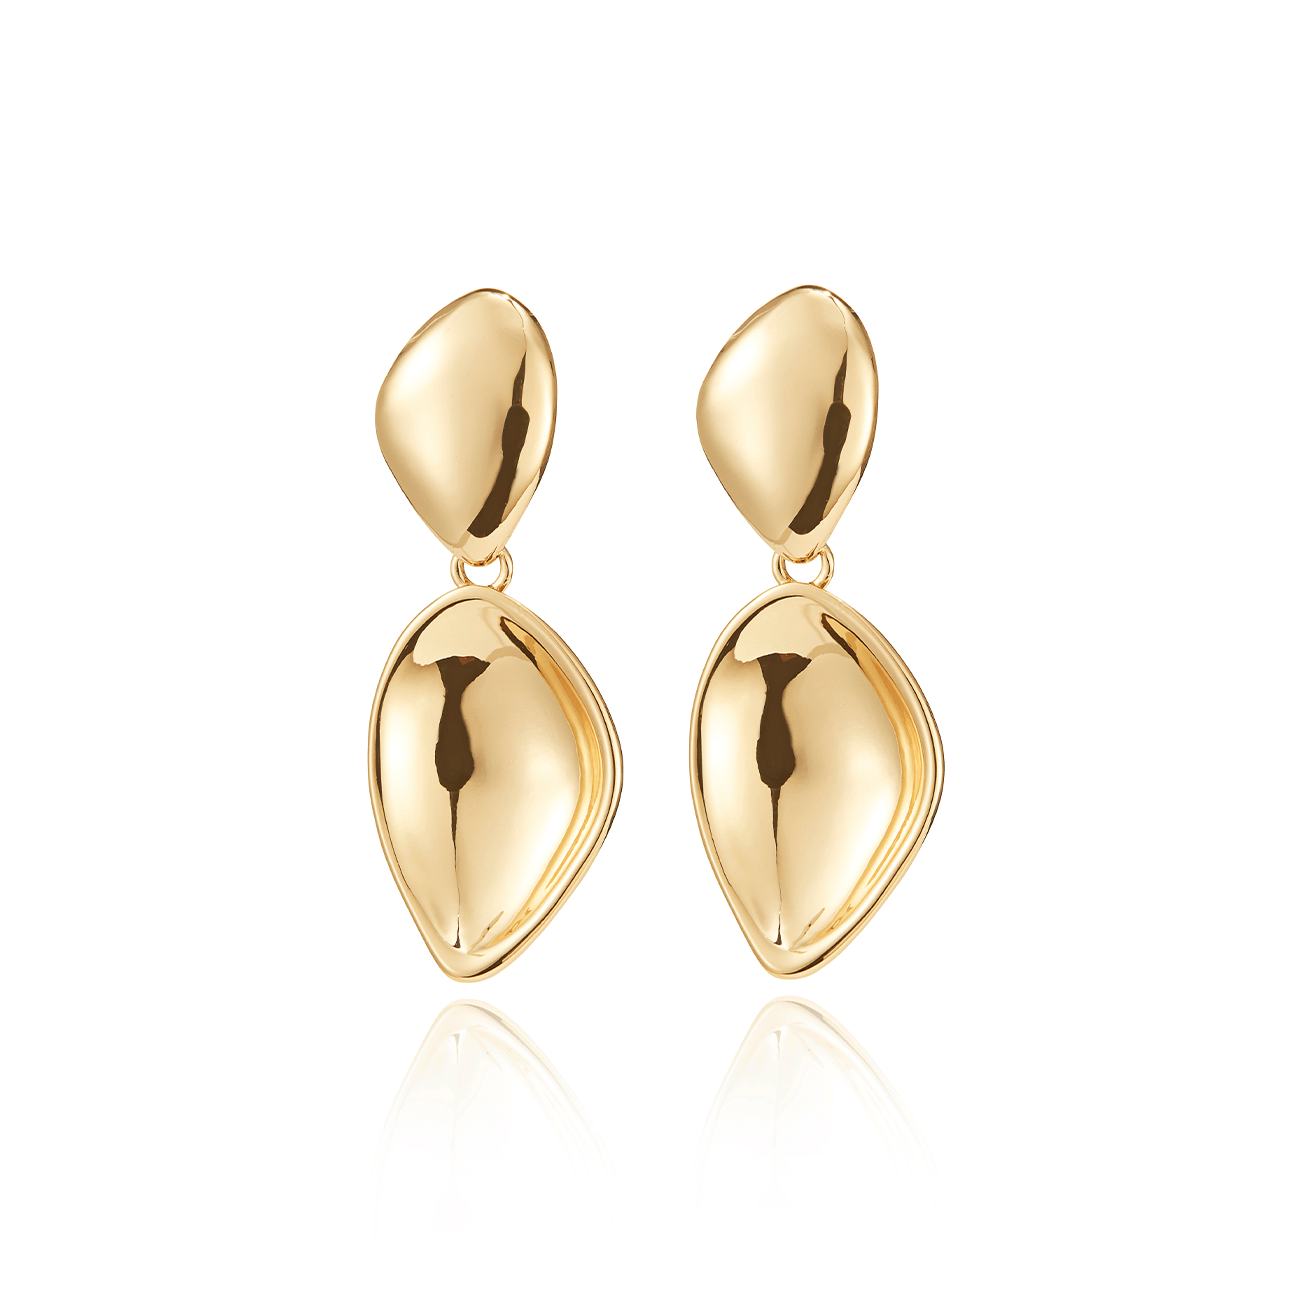 Doré Detachable Drop Earrings